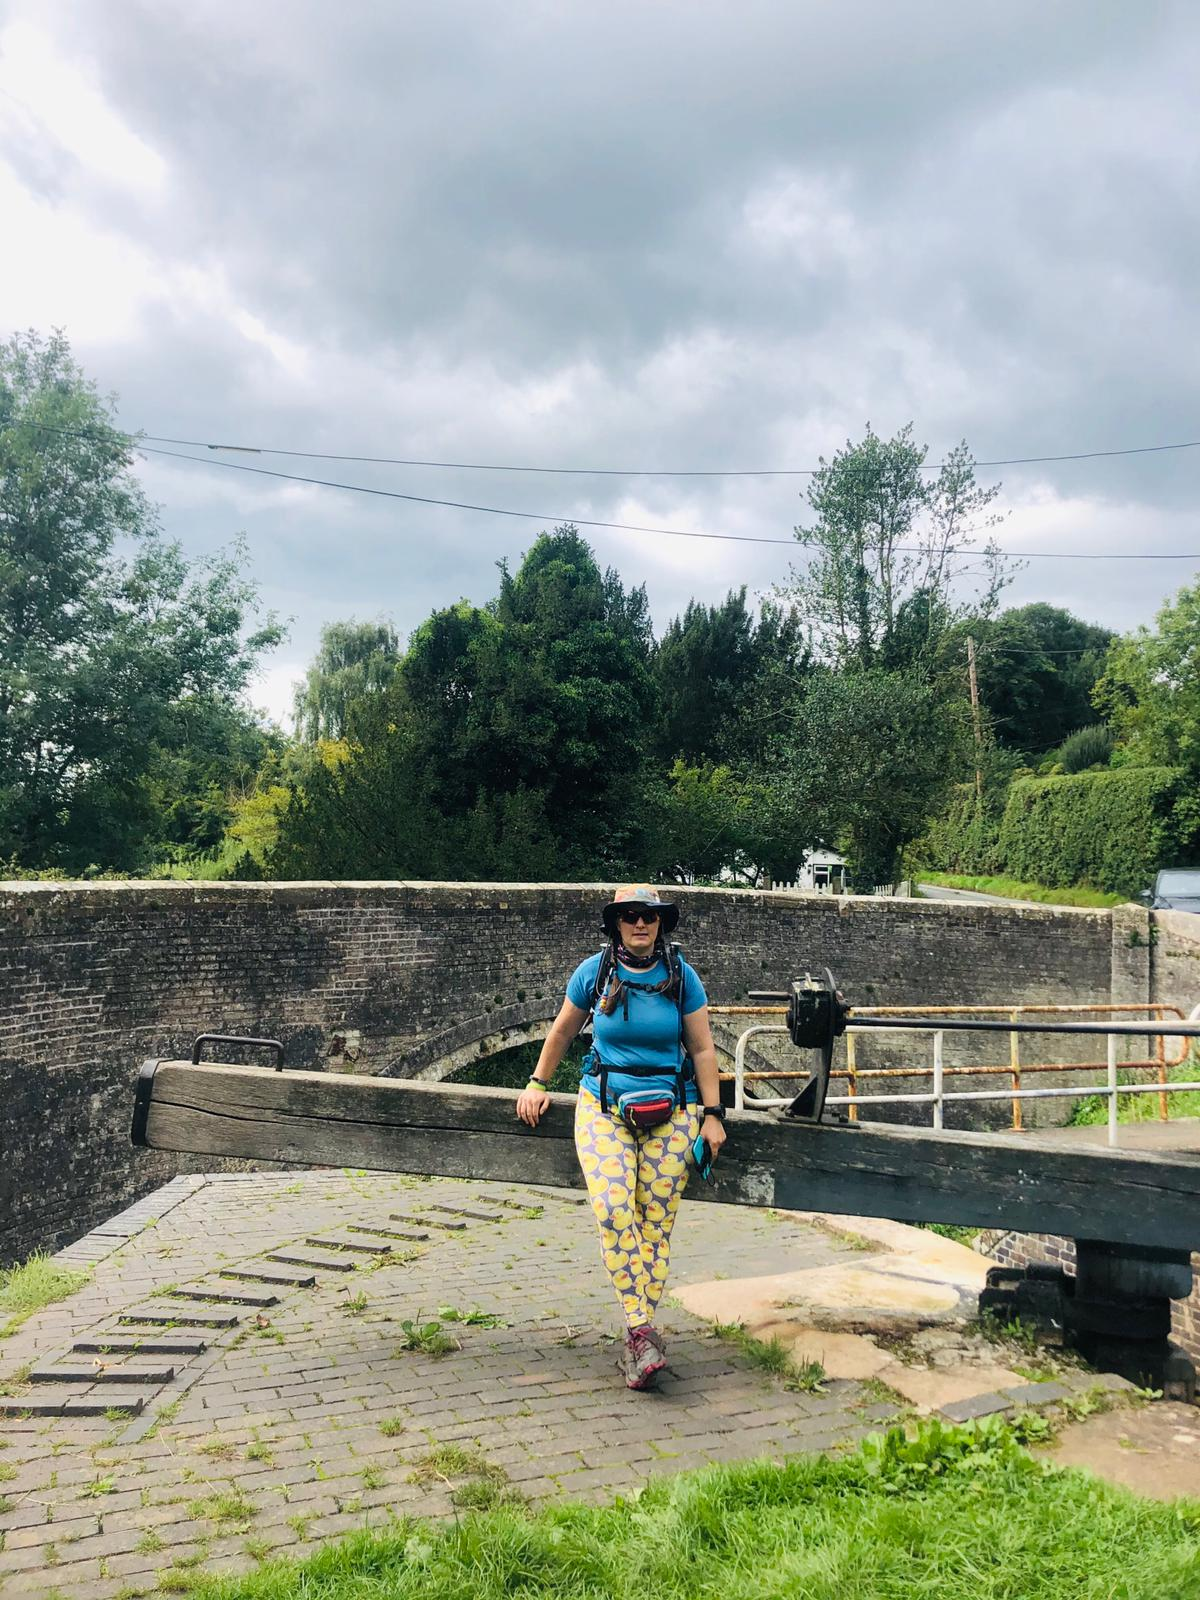 A woman in walking kit sitting on a canal lock gate